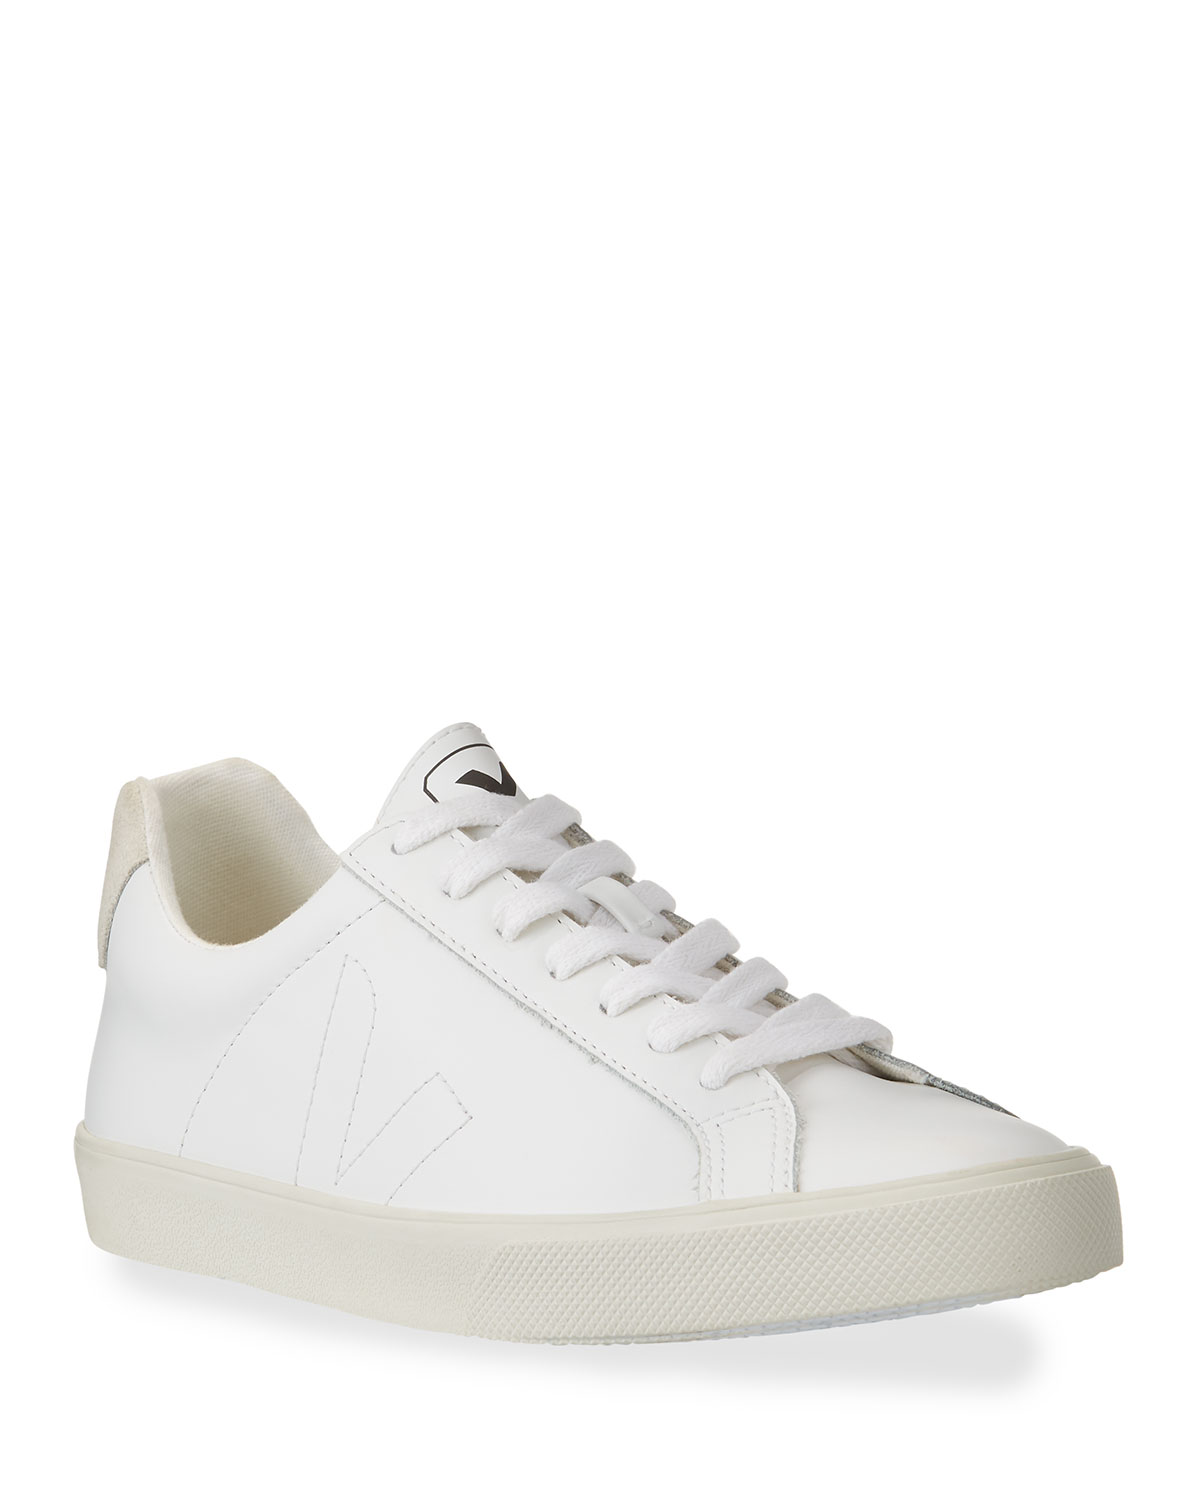 Veja Sneakers ESPLAR LEATHER LOGO SNEAKERS